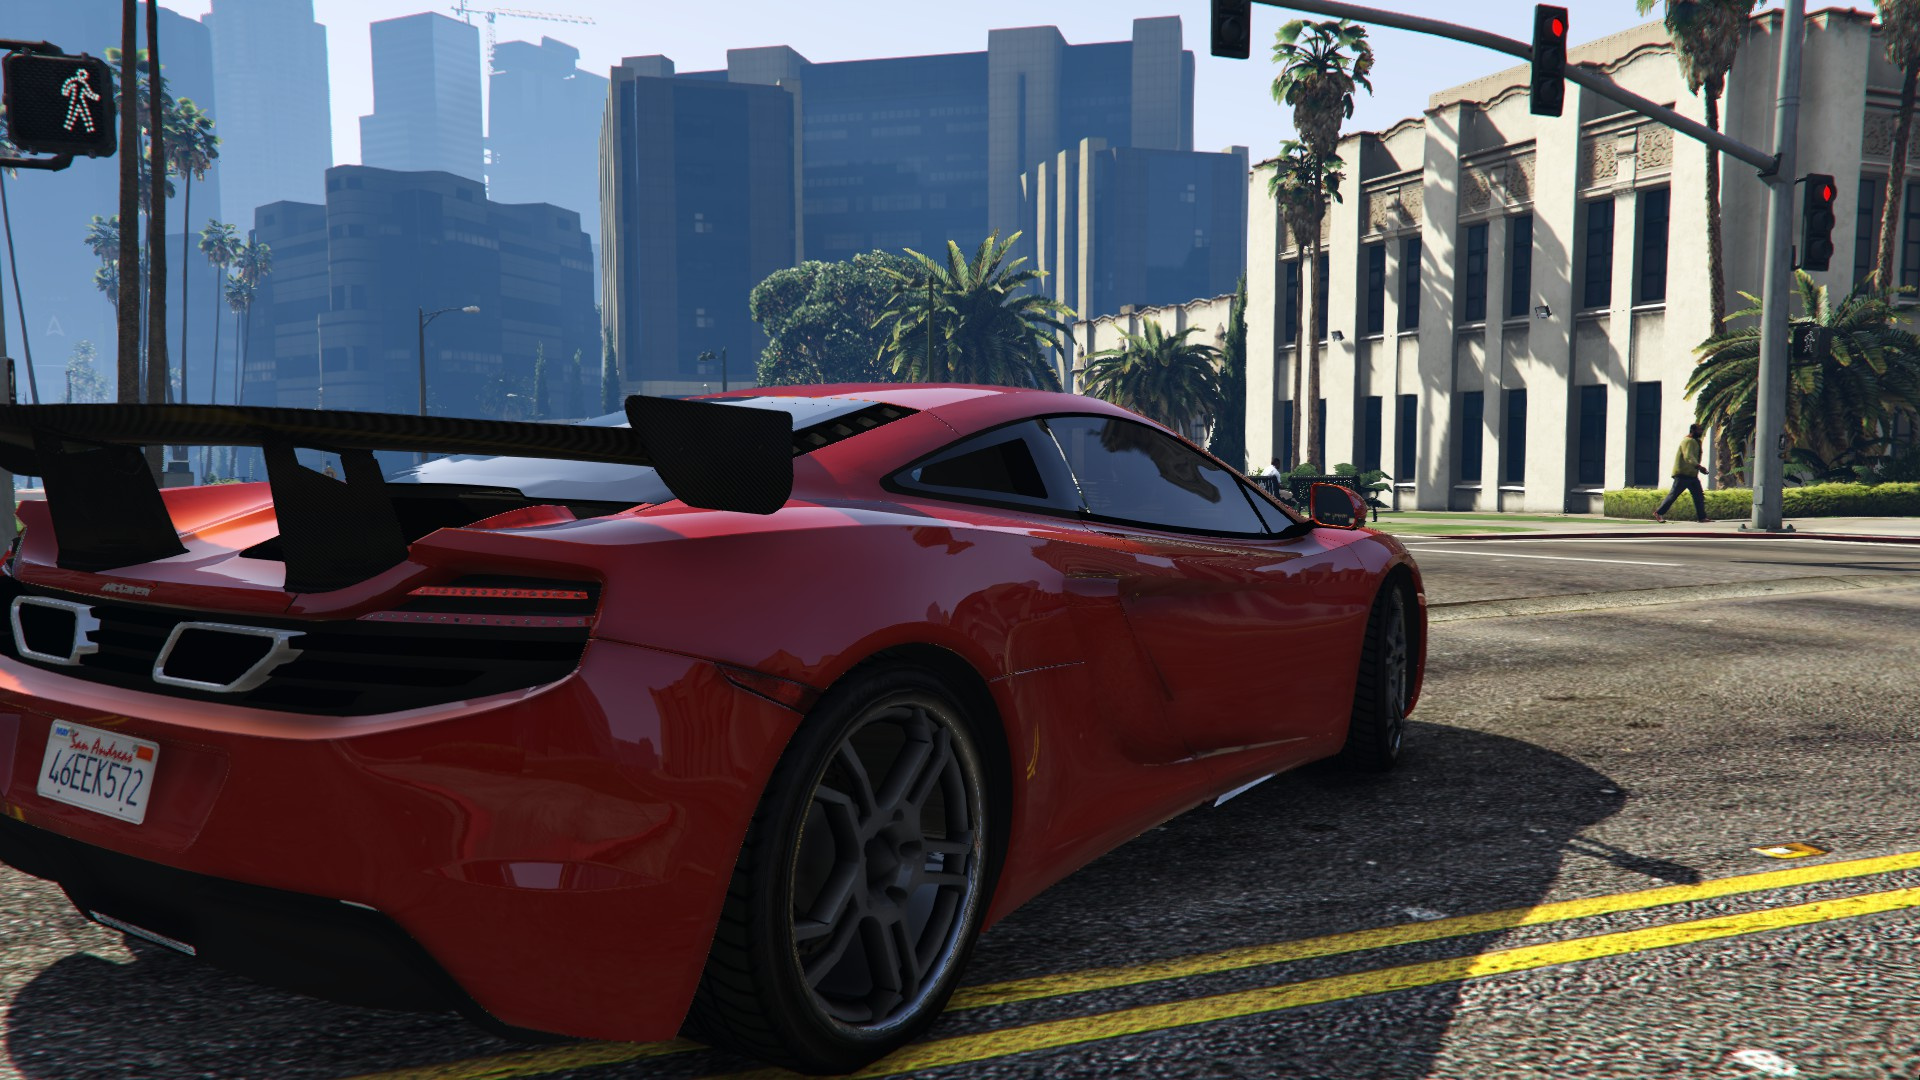 https://img.gta5-mods.com/q95/images/mclaren-mp4-12c-11/47cbfa-2015-10-31_00008.jpg